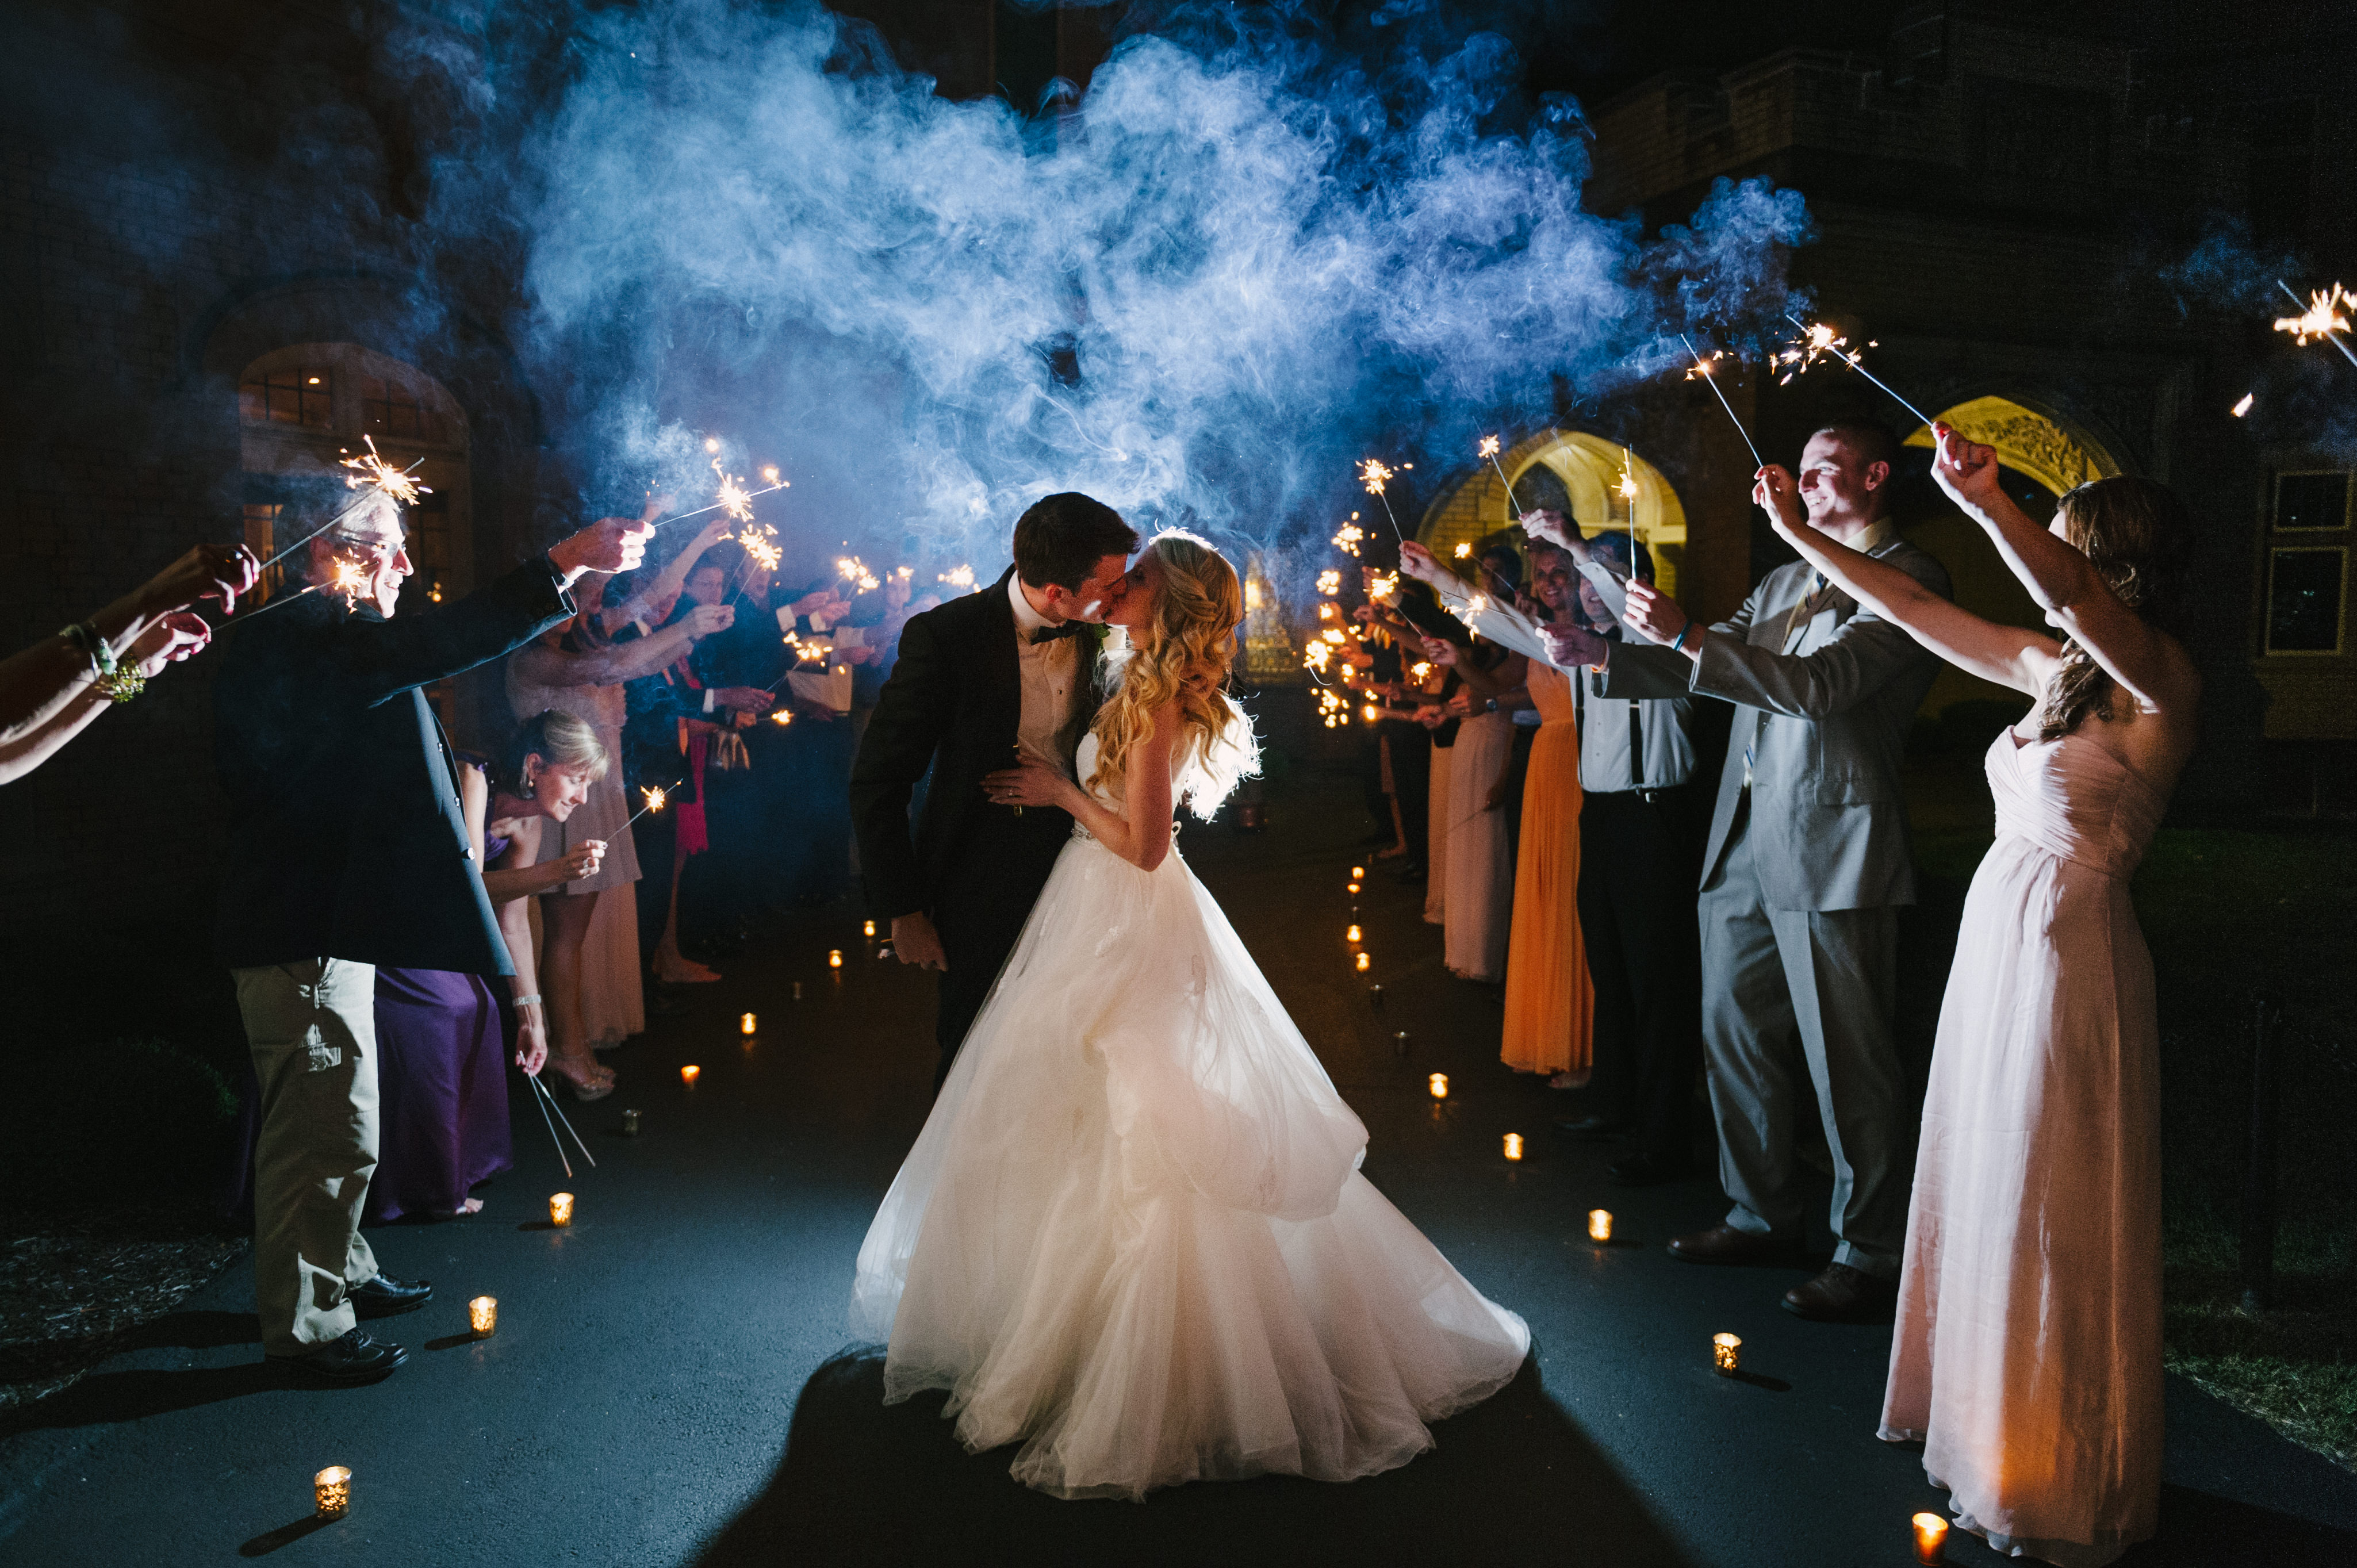 Looking to do a formal exit from your ceremony or reception? We're sharing 12 fun sendoff ideas for exiting your wedding in style over on the Jessica Dum Wedding Coordination blog today! | End of night sparkler exit.